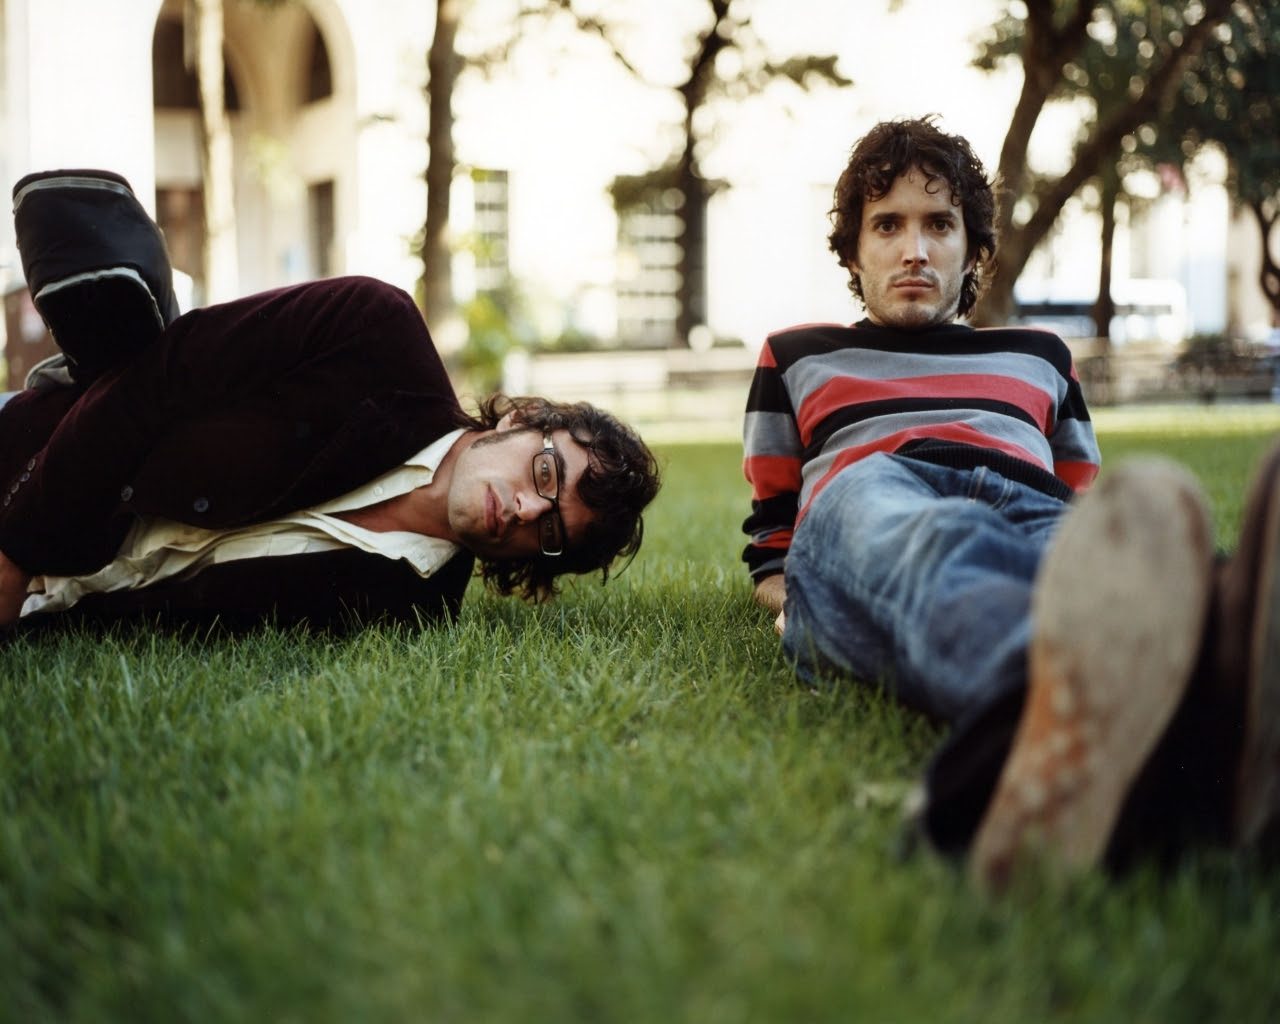 Grass Flight Of The Conchords Bret Mckenzie Jemaine Clement